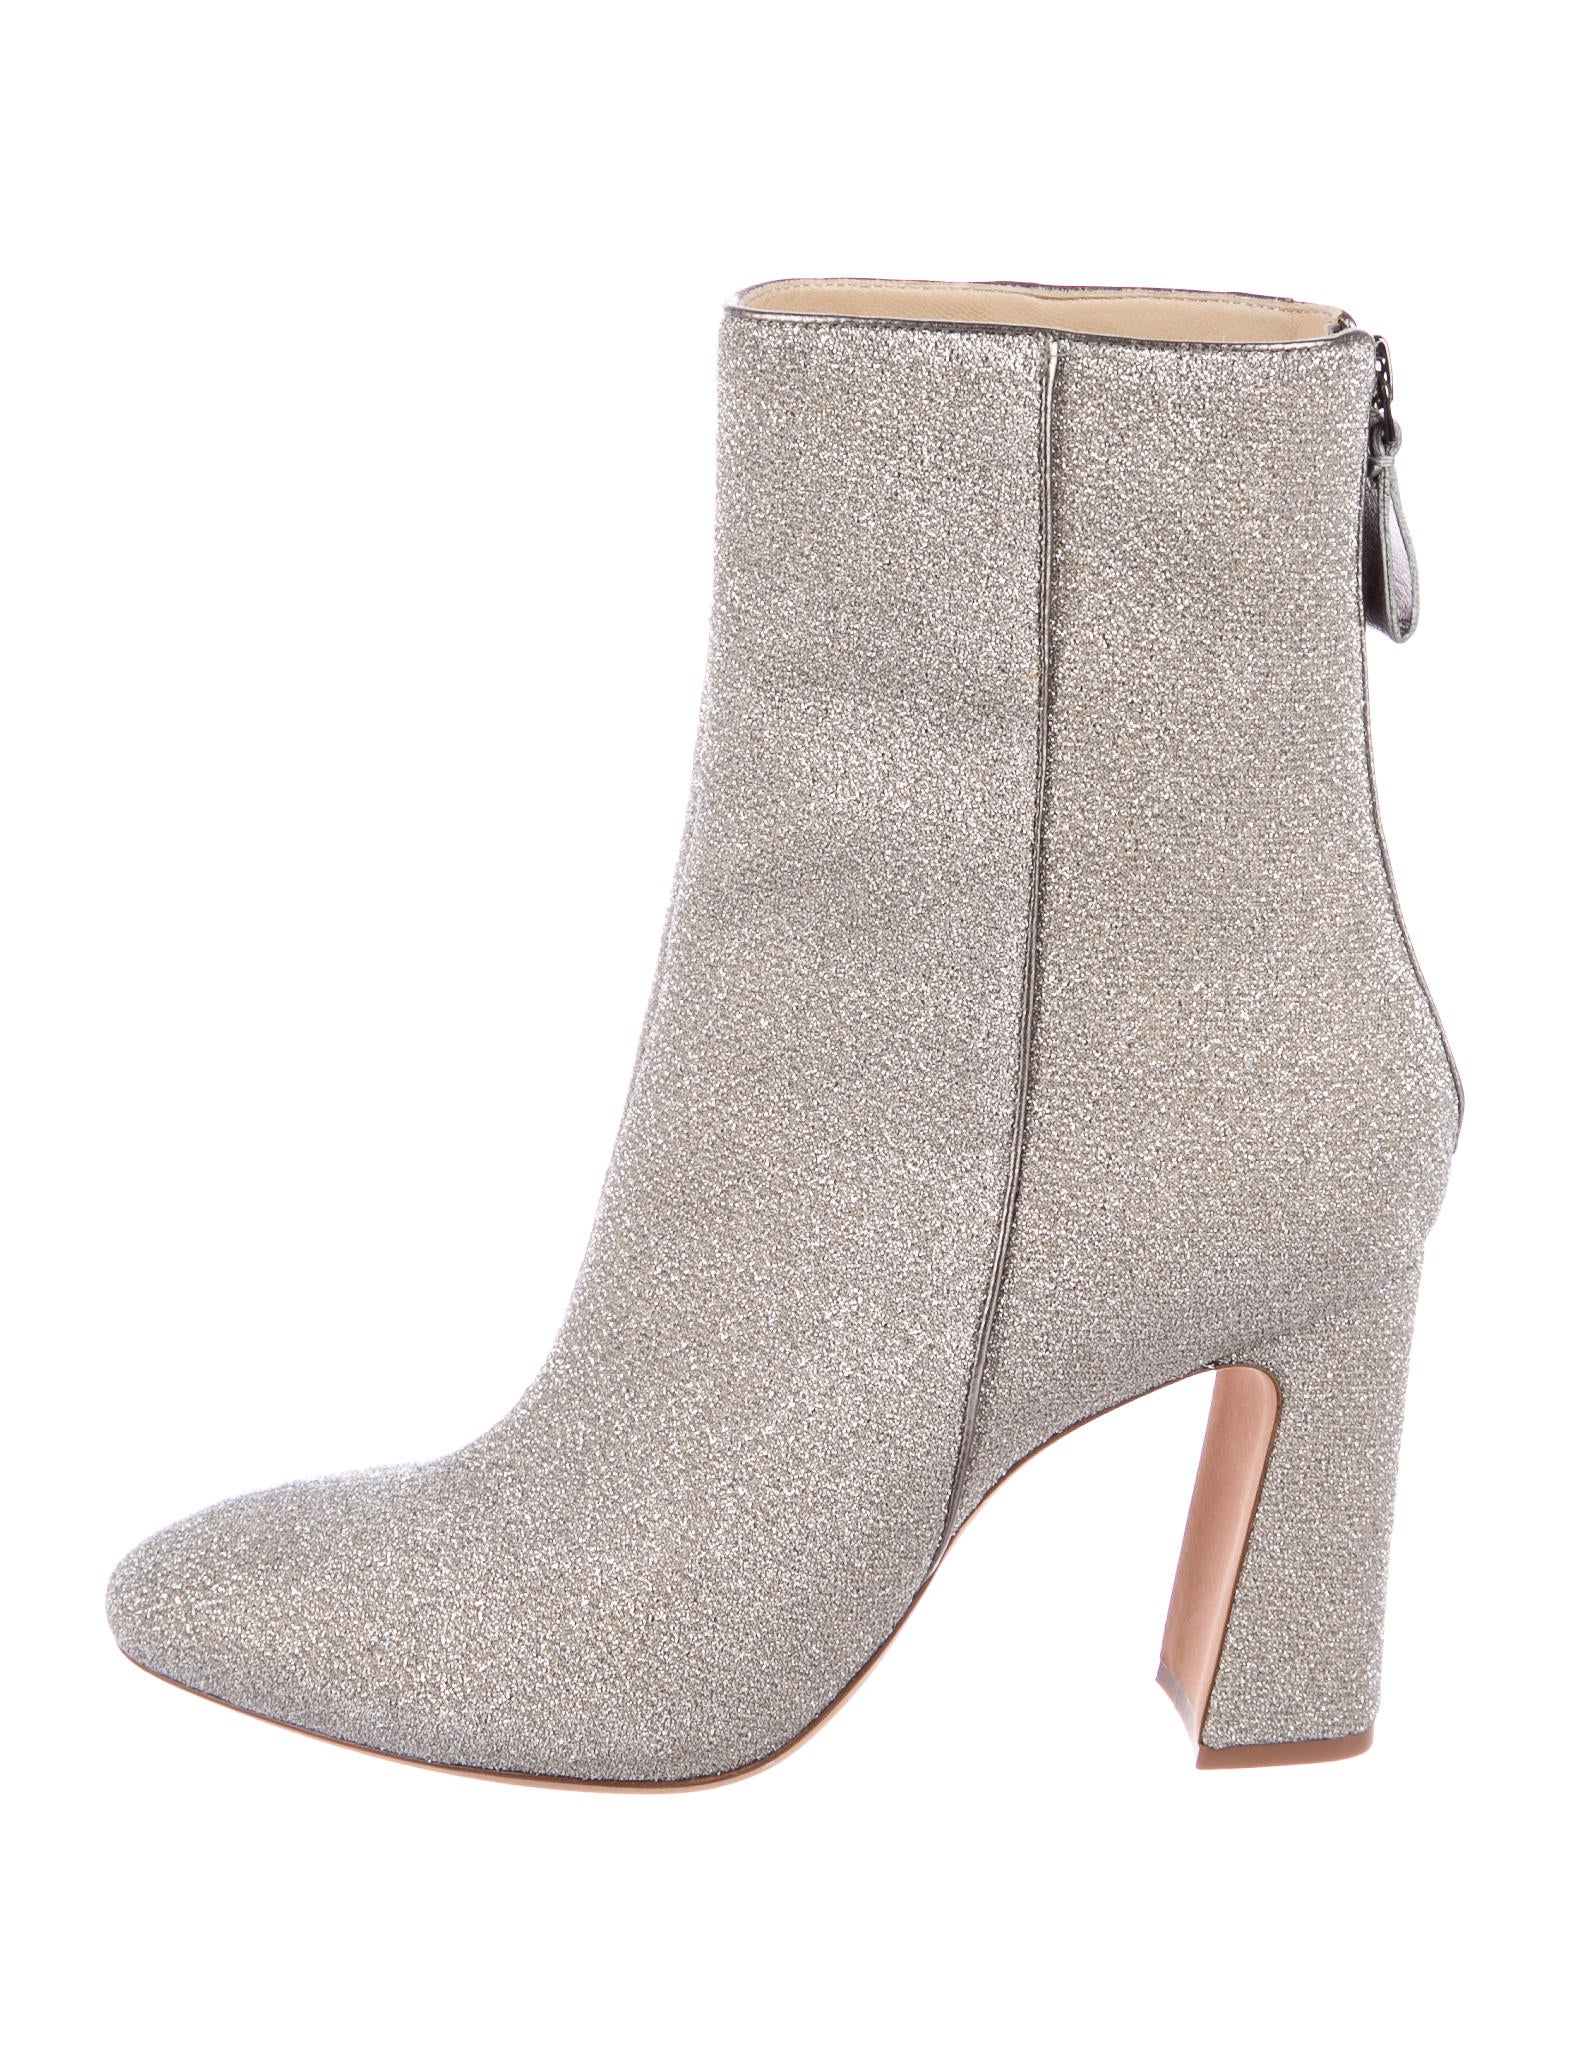 Alexandre Birman Metallic Knit Ankle Boots